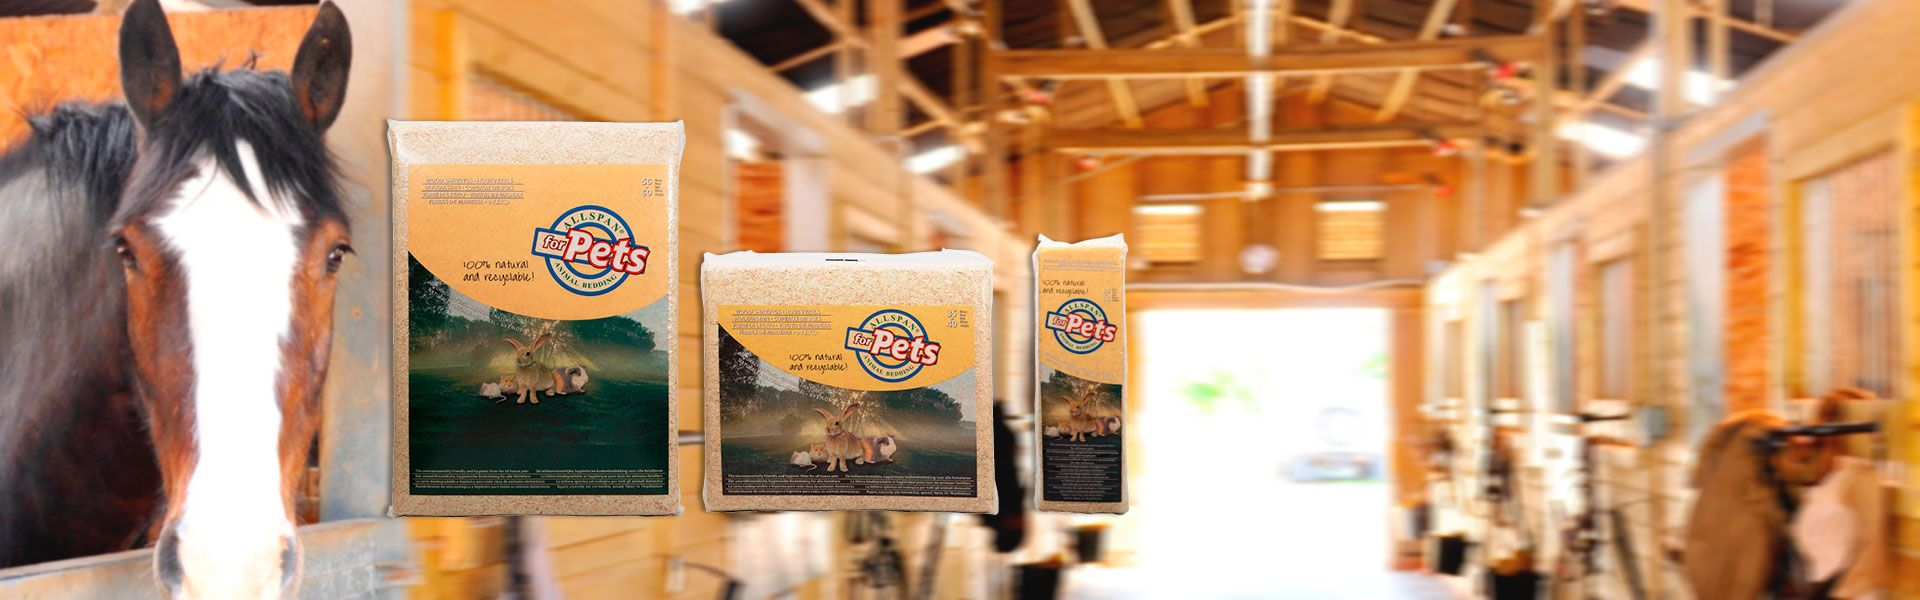 Allspan Woodshavings are 100% natural and recyclable animal